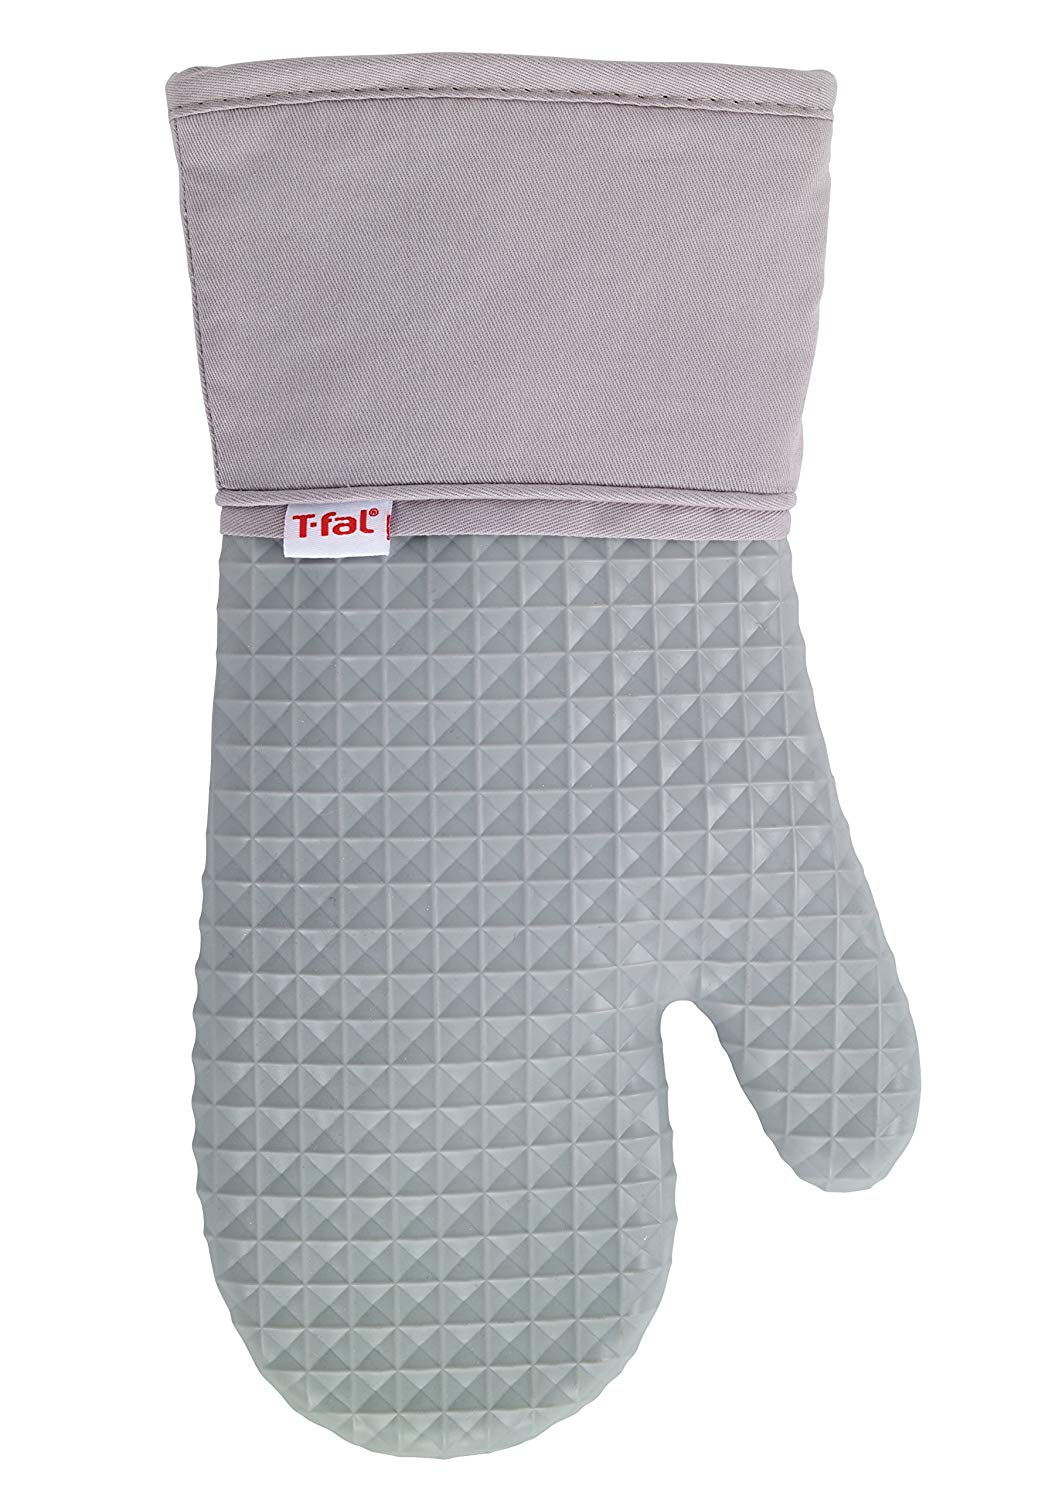 T-fal Textiles Silicone Waffle Softflex Non-Slip Grip 100% Cotton Twill Heat Resistant Oven Mitt, 13-inches x 7-inches, Grey